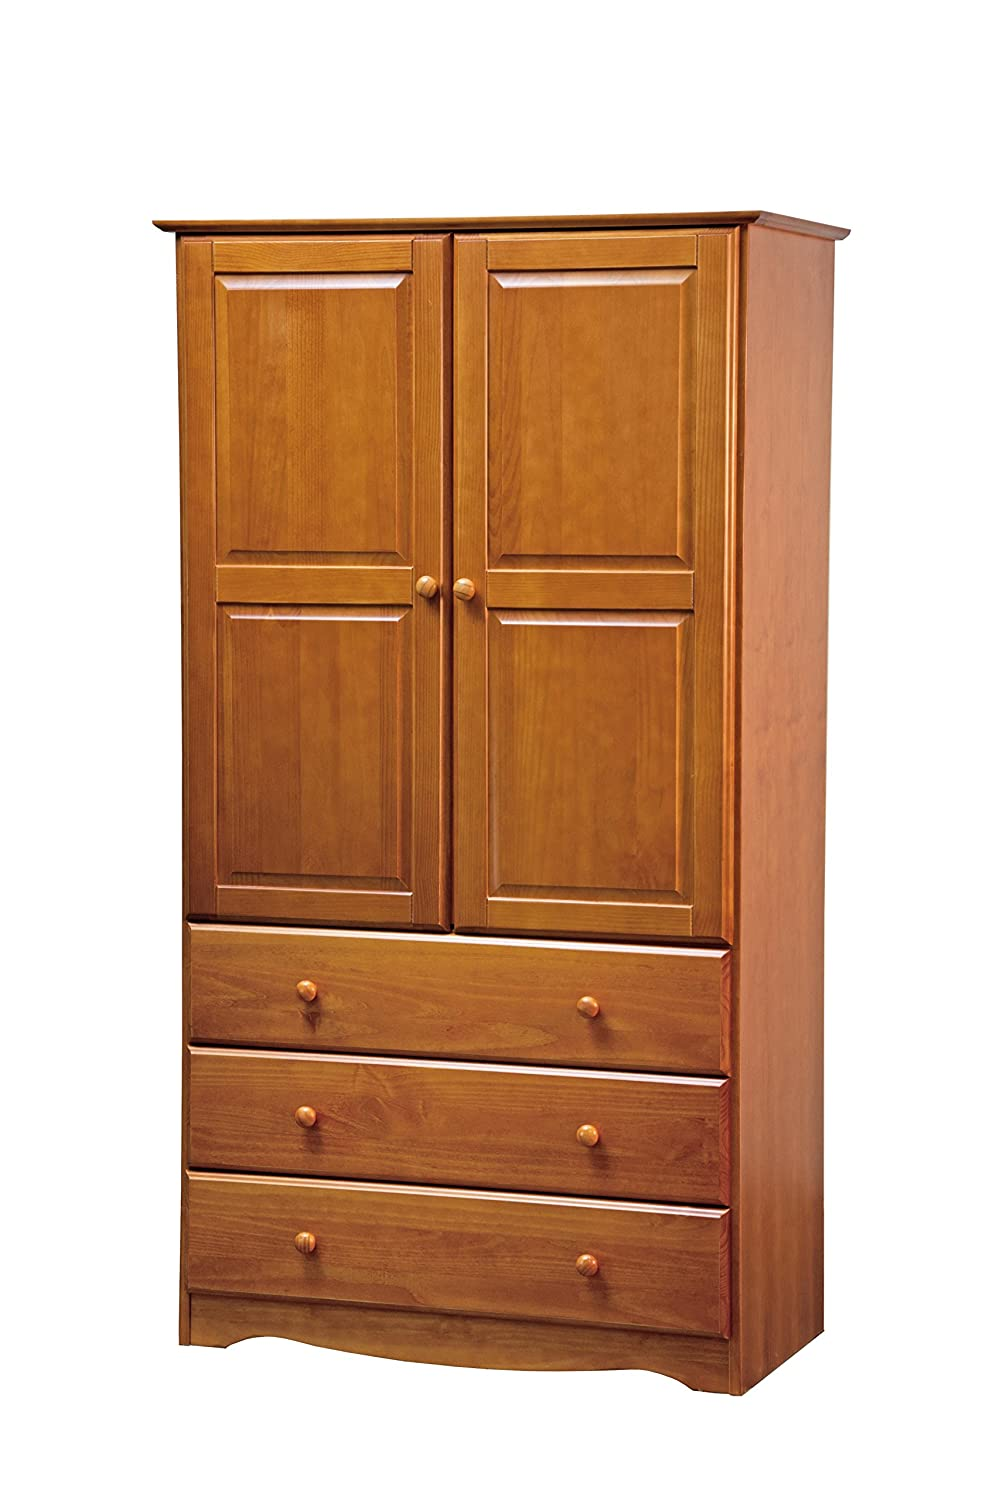 New! 100% Solid Wood 40'-Combo Wardrobe/Armoire/Closet/3-Drawer Chest Palace Imports, Mahogany, 40' W x 72' H x 21' D. 1 Clothing Rod Included. Additional Shelves Sold Separately. (Honey Pine) 5954